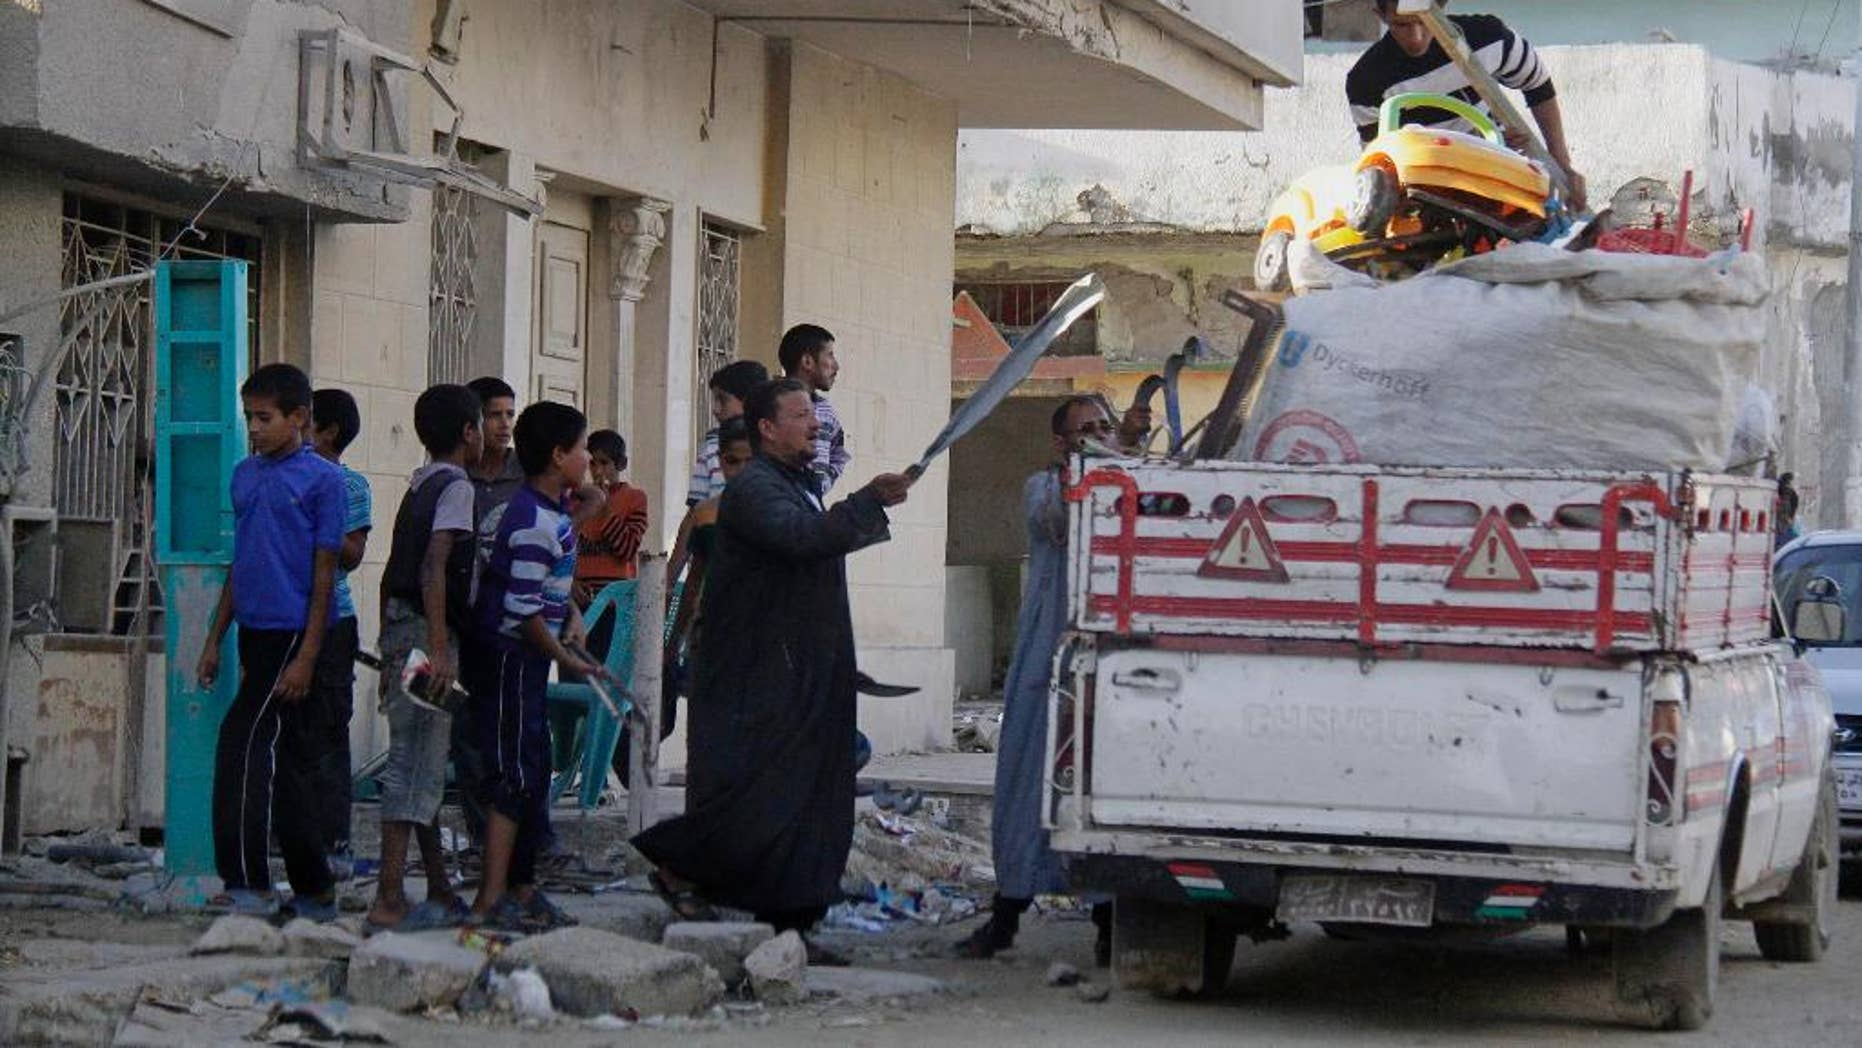 People collect their belongings from their residence as the Egyptian army demolish homes on the Egyptian side of border town of Rafah, northeast of Cairo, Egypt, Thursday, Nov. 6, 2014. In the deadliest-ever militant attack on the military, at least 30 soldiers were killed late last month in Sinai, prompting el-Sissi to declare a state of emergency in northern Sinai and order the eviction of some 10,000 people from the town of Rafah on the border with the Gaza Strip. (AP Photo/El Shorouk newspaper, Ahmed Abd El-Latif) EGYPT OUT